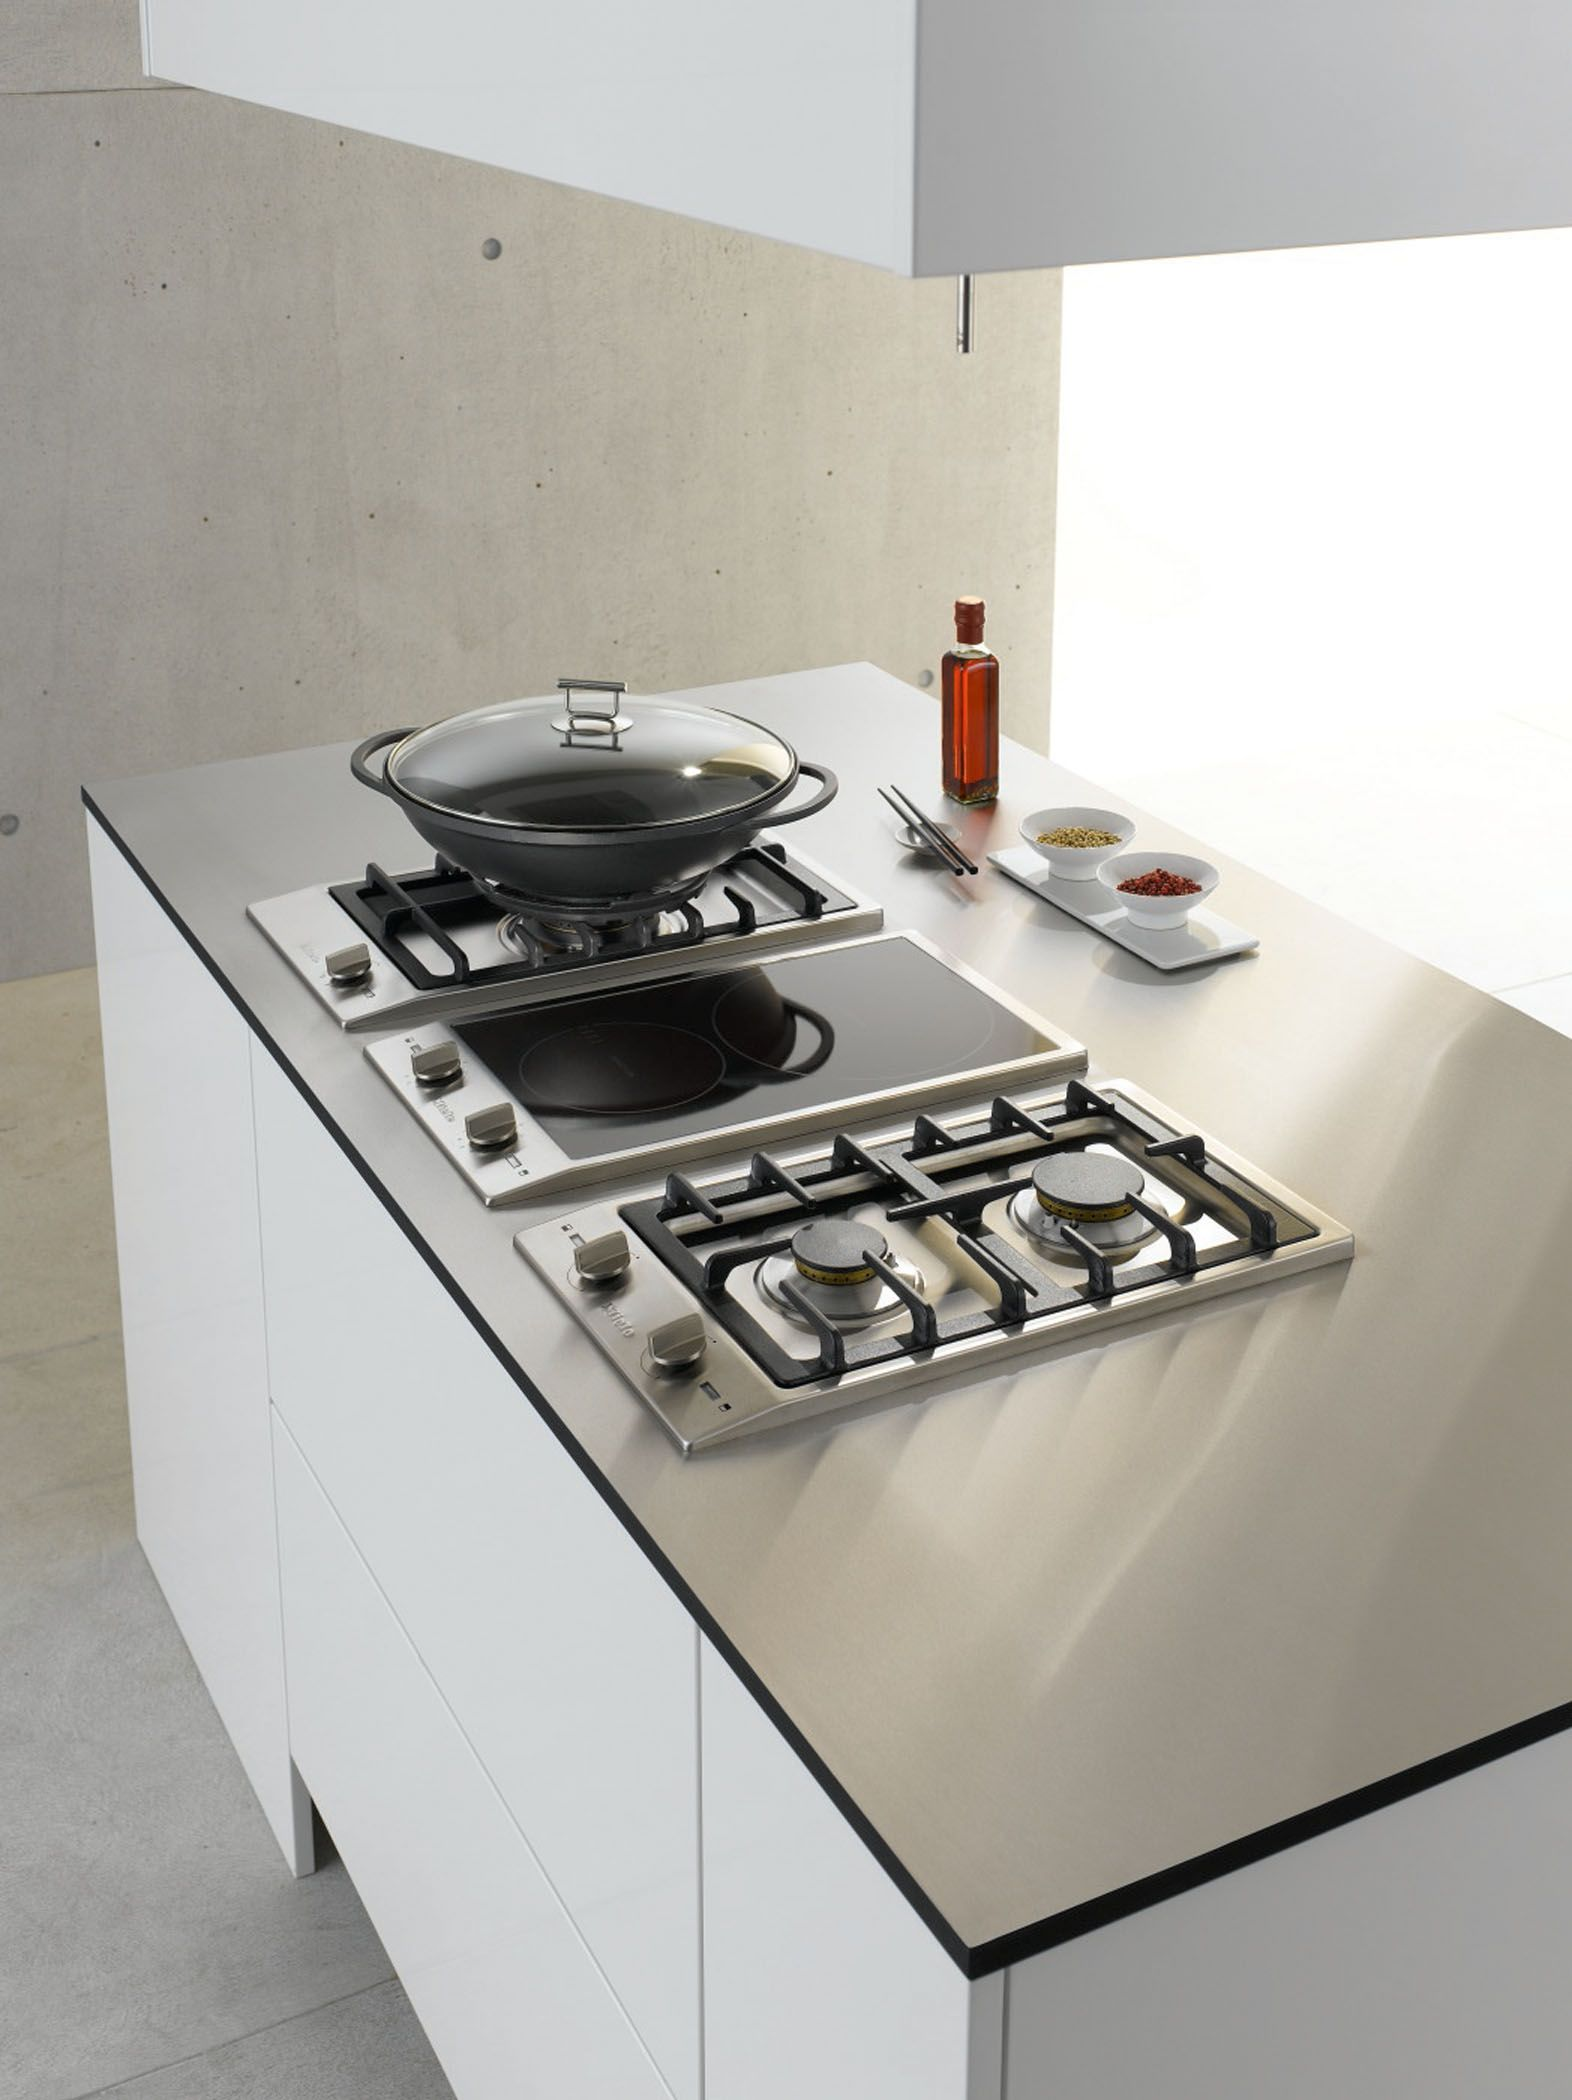 Miele Kitchen Design Miele Combiset Perfect Cooktop For Small Kitchens